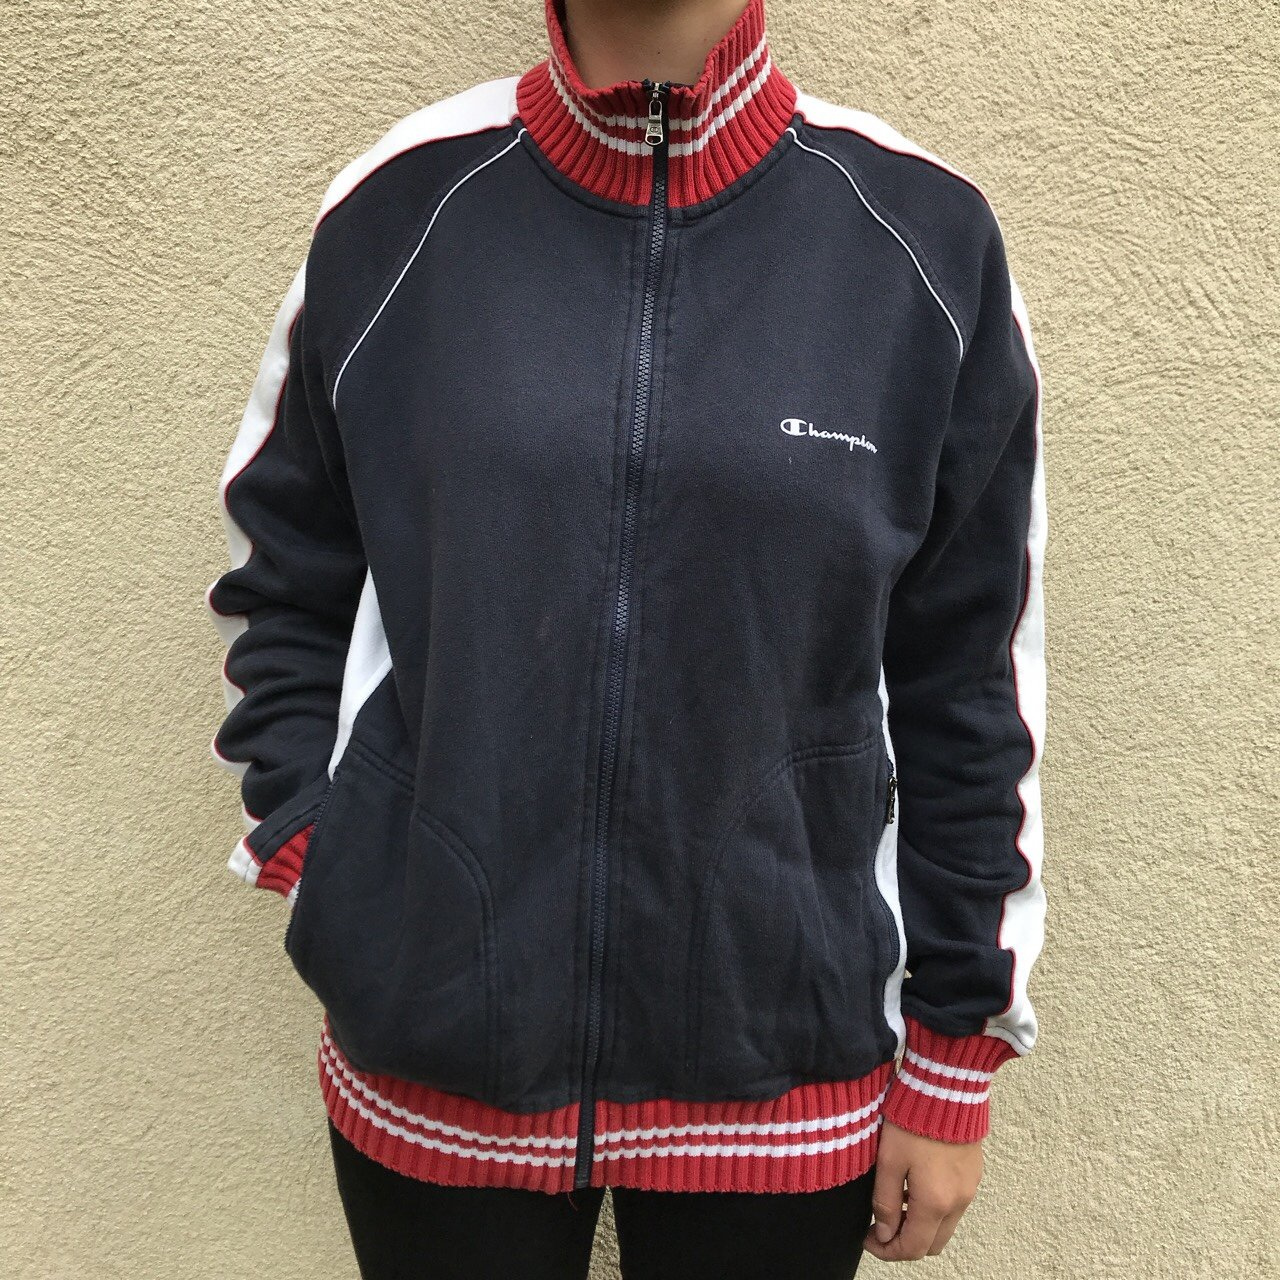 Vintage champion jacket size L women s 693181acaa